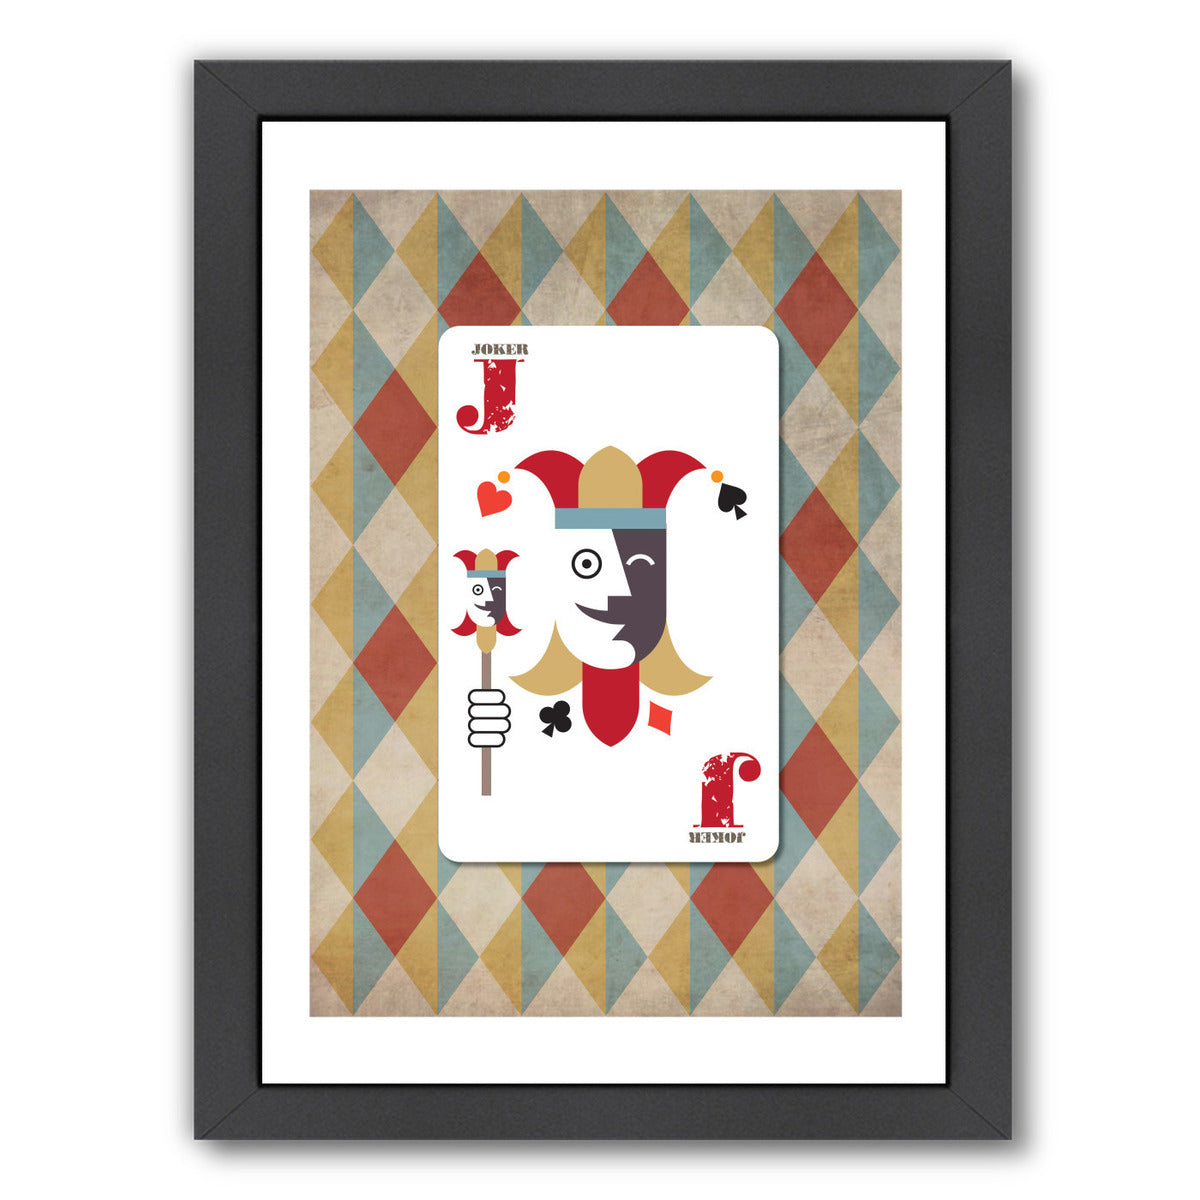 Joker Poster by Visual Philosophy Framed Print - Wall Art - Americanflat